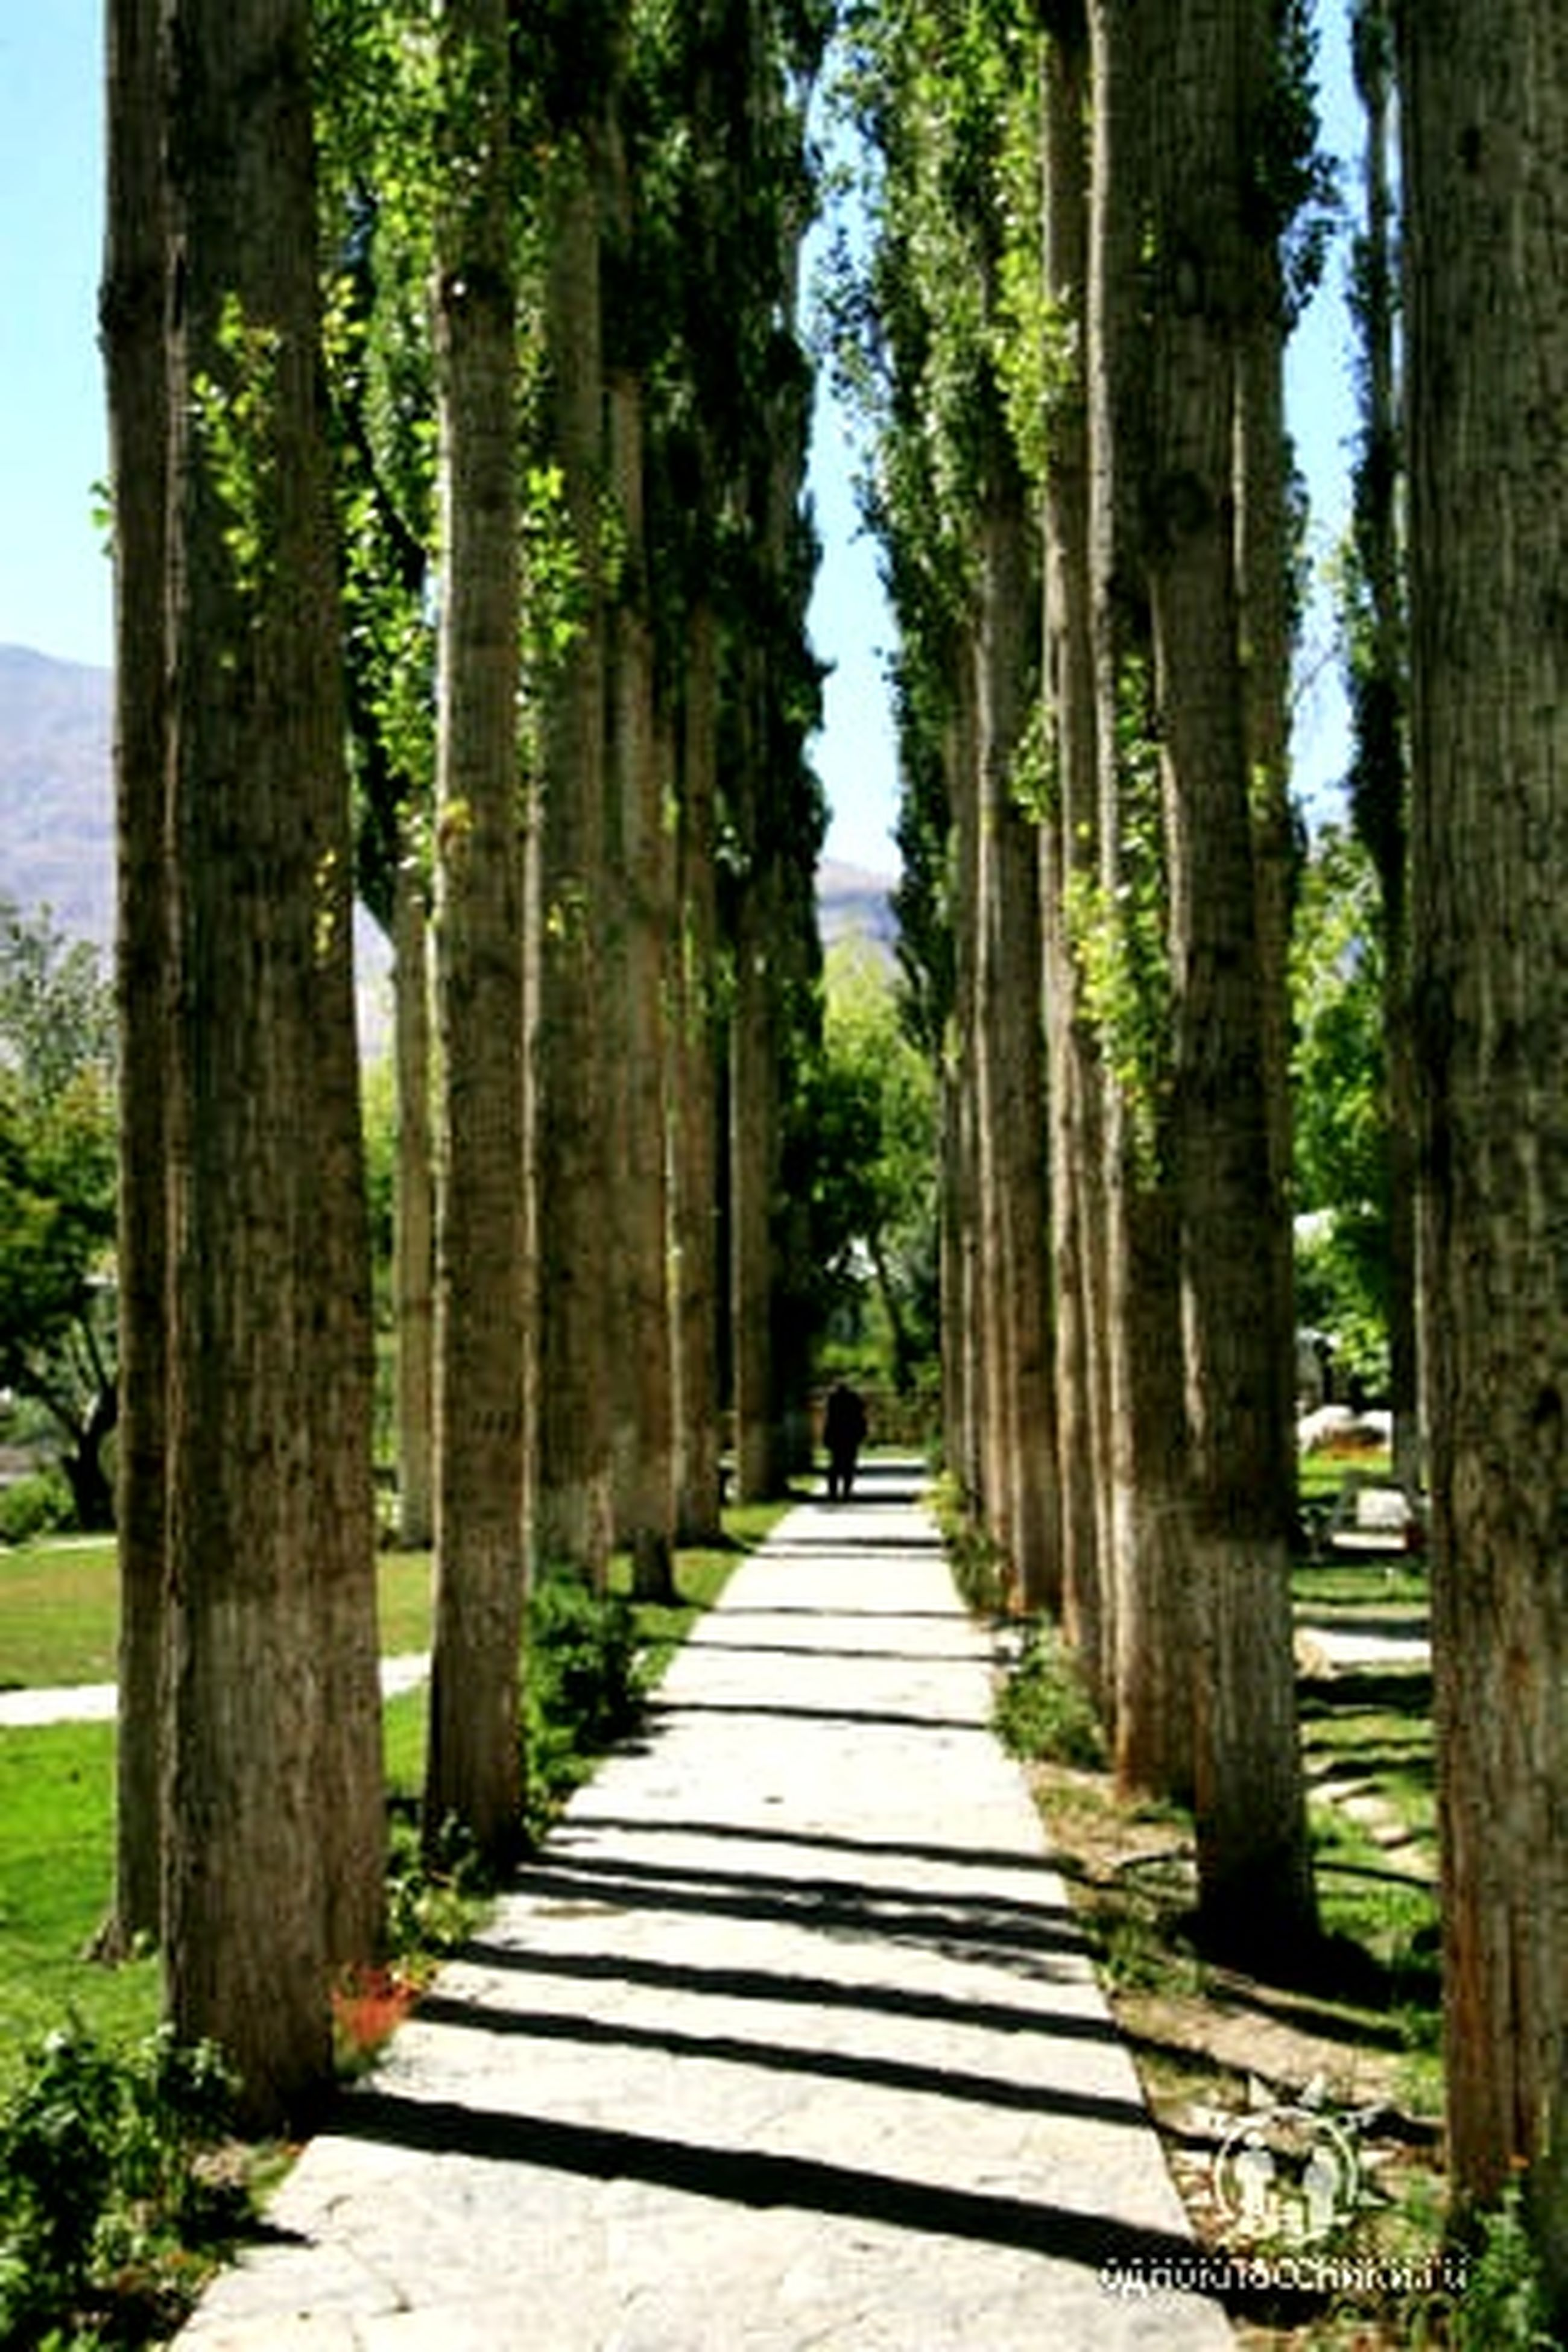 tree, the way forward, diminishing perspective, treelined, vanishing point, tree trunk, tranquility, footpath, tranquil scene, nature, walkway, pathway, growth, in a row, beauty in nature, scenics, narrow, park - man made space, day, incidental people